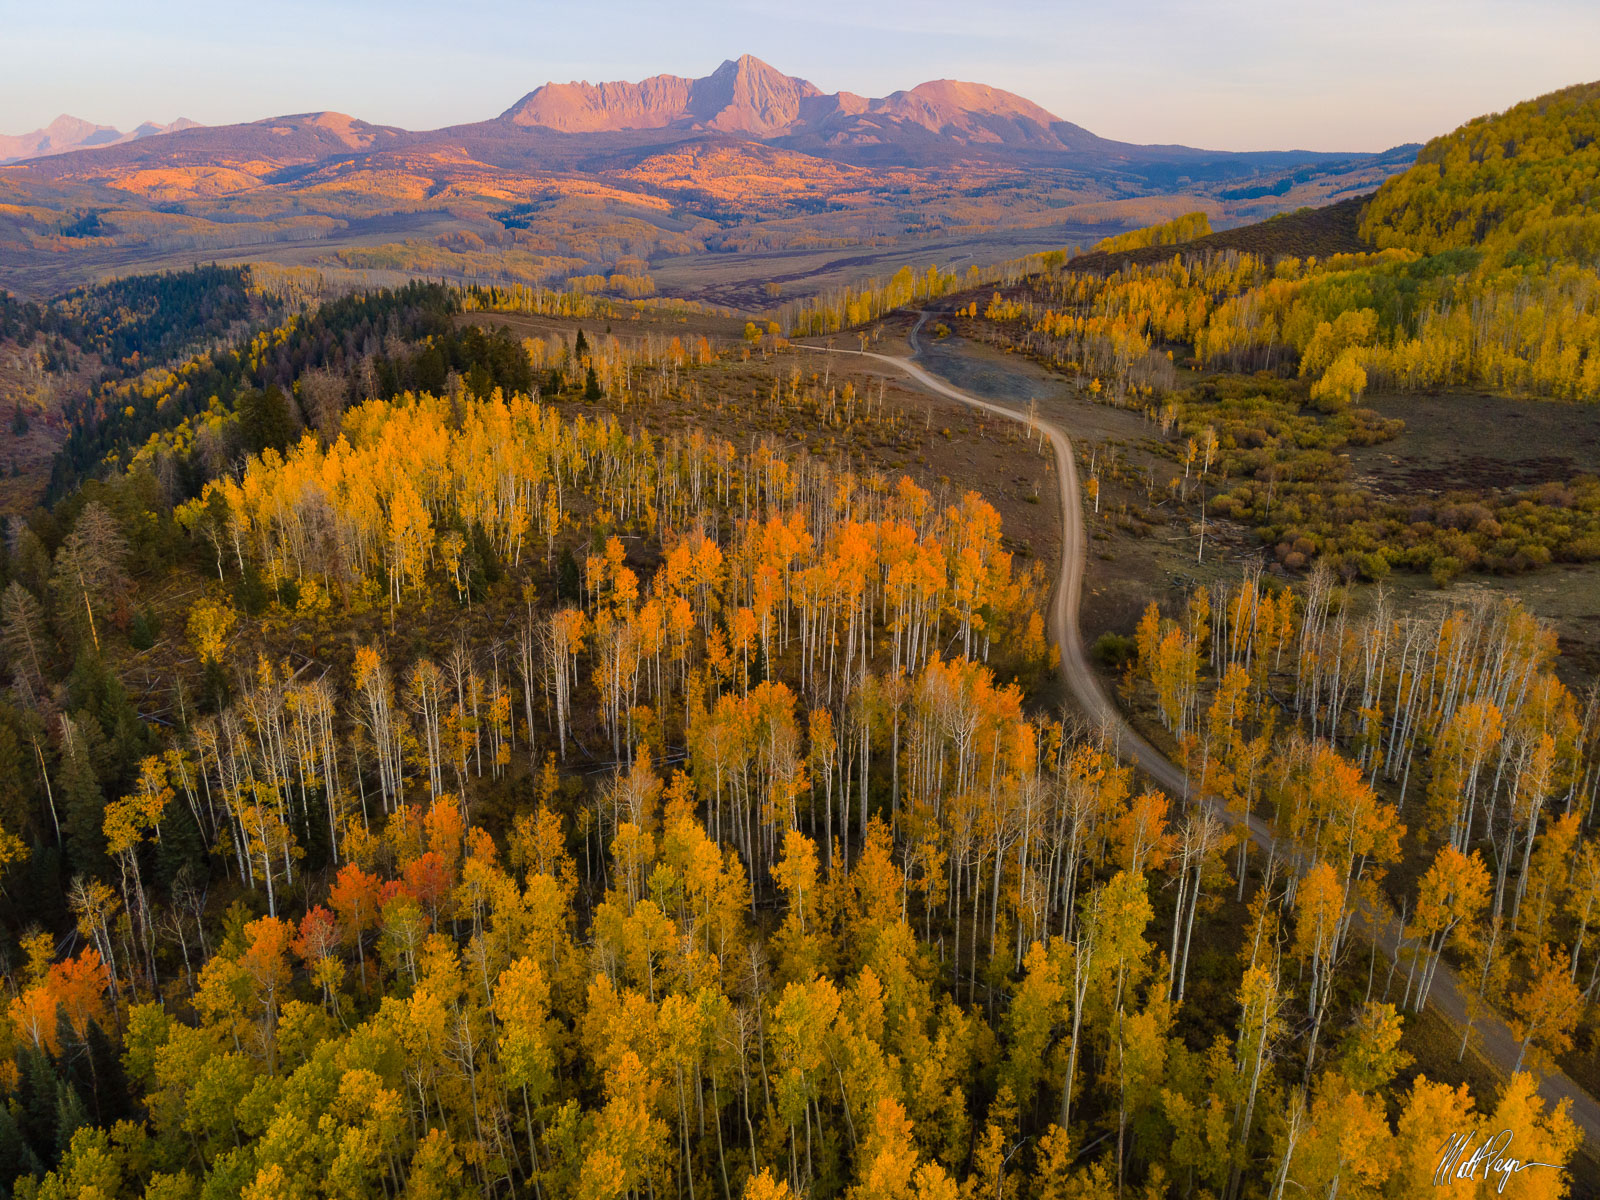 This country road in Colorado leads right through some amazing aspen tree stands filled with fall color. The road leads the eye...